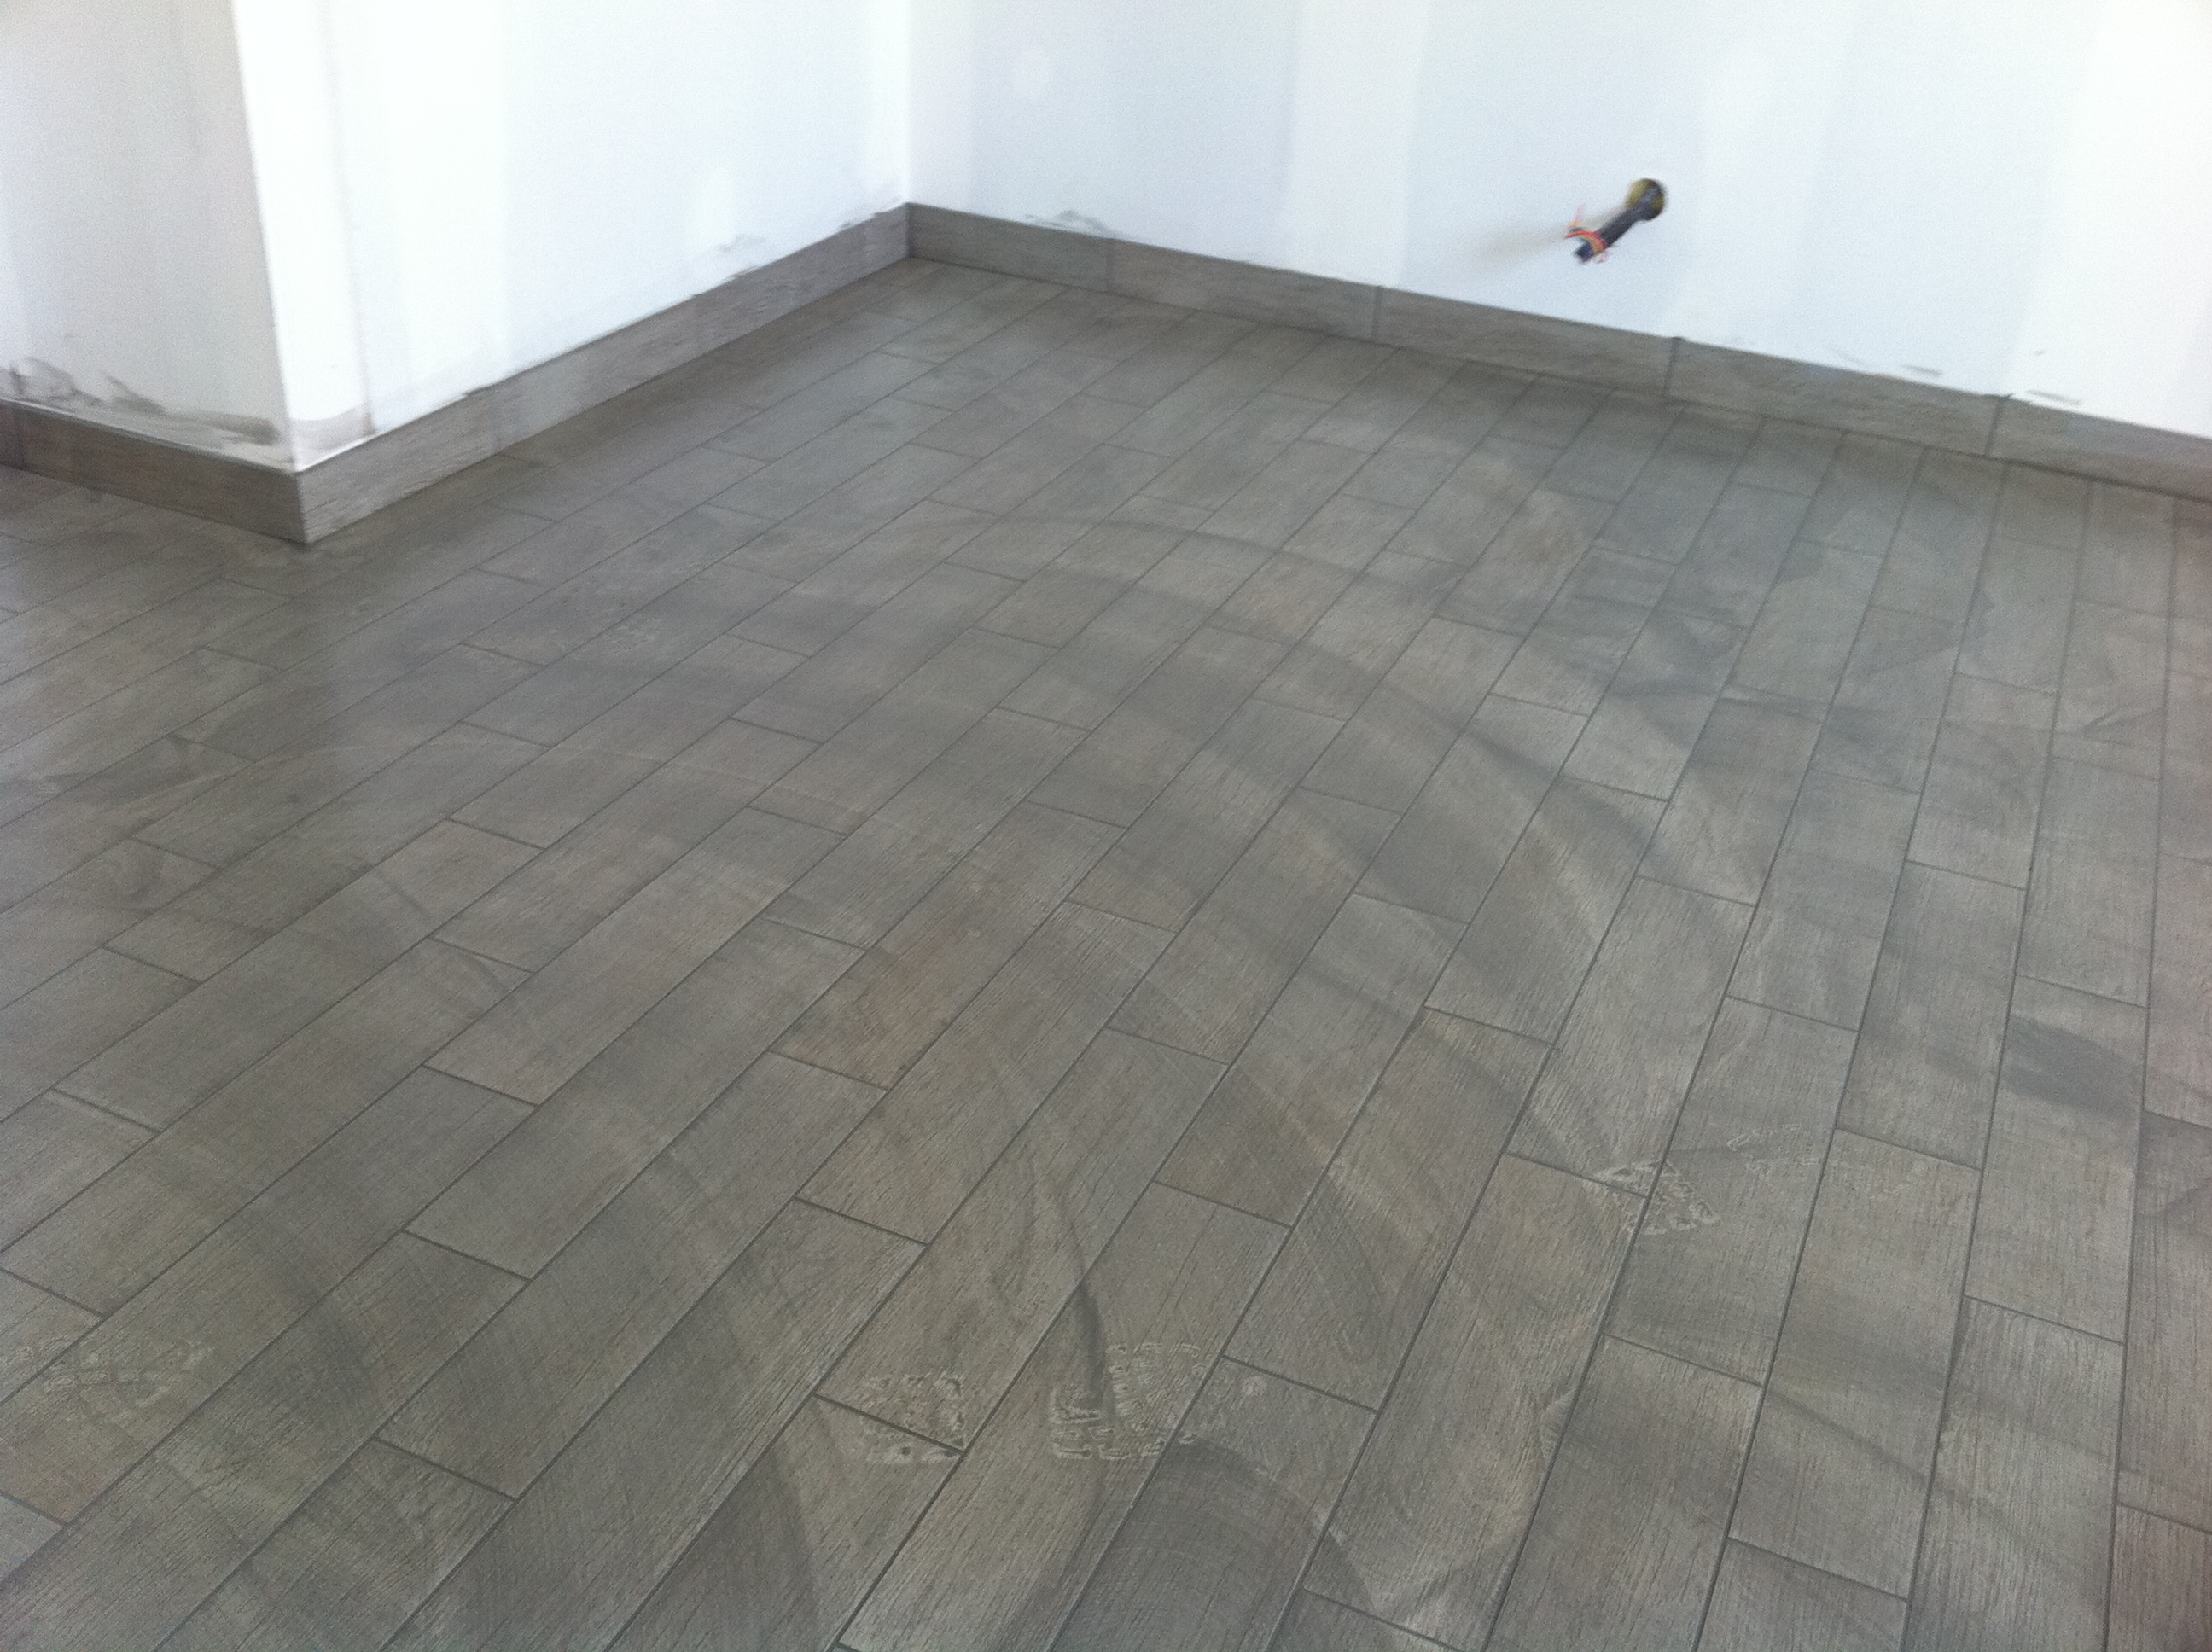 Carrelage imitation parquet pas cher for Porcelanosa carrelage imitation parquet